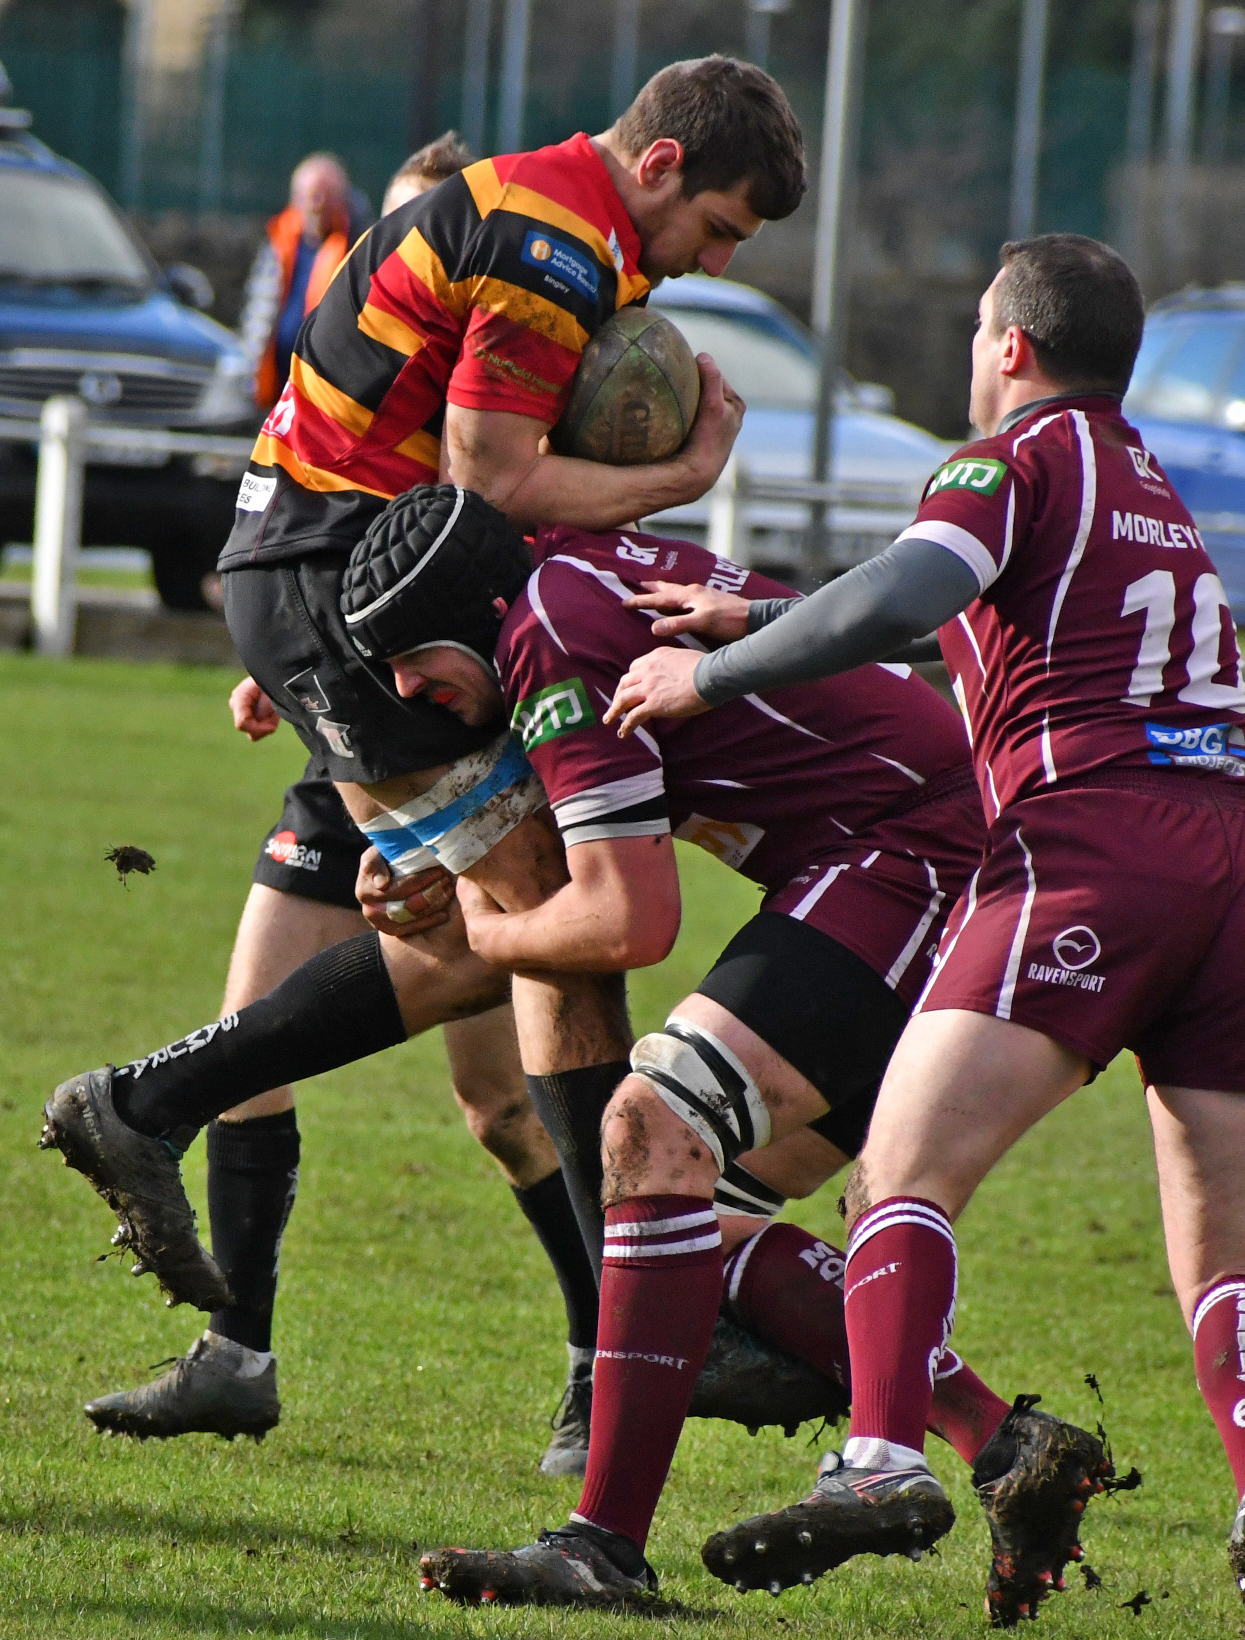 Bradford and Bingley v Morley: Ante Majic (Bees) meets the Morley defence